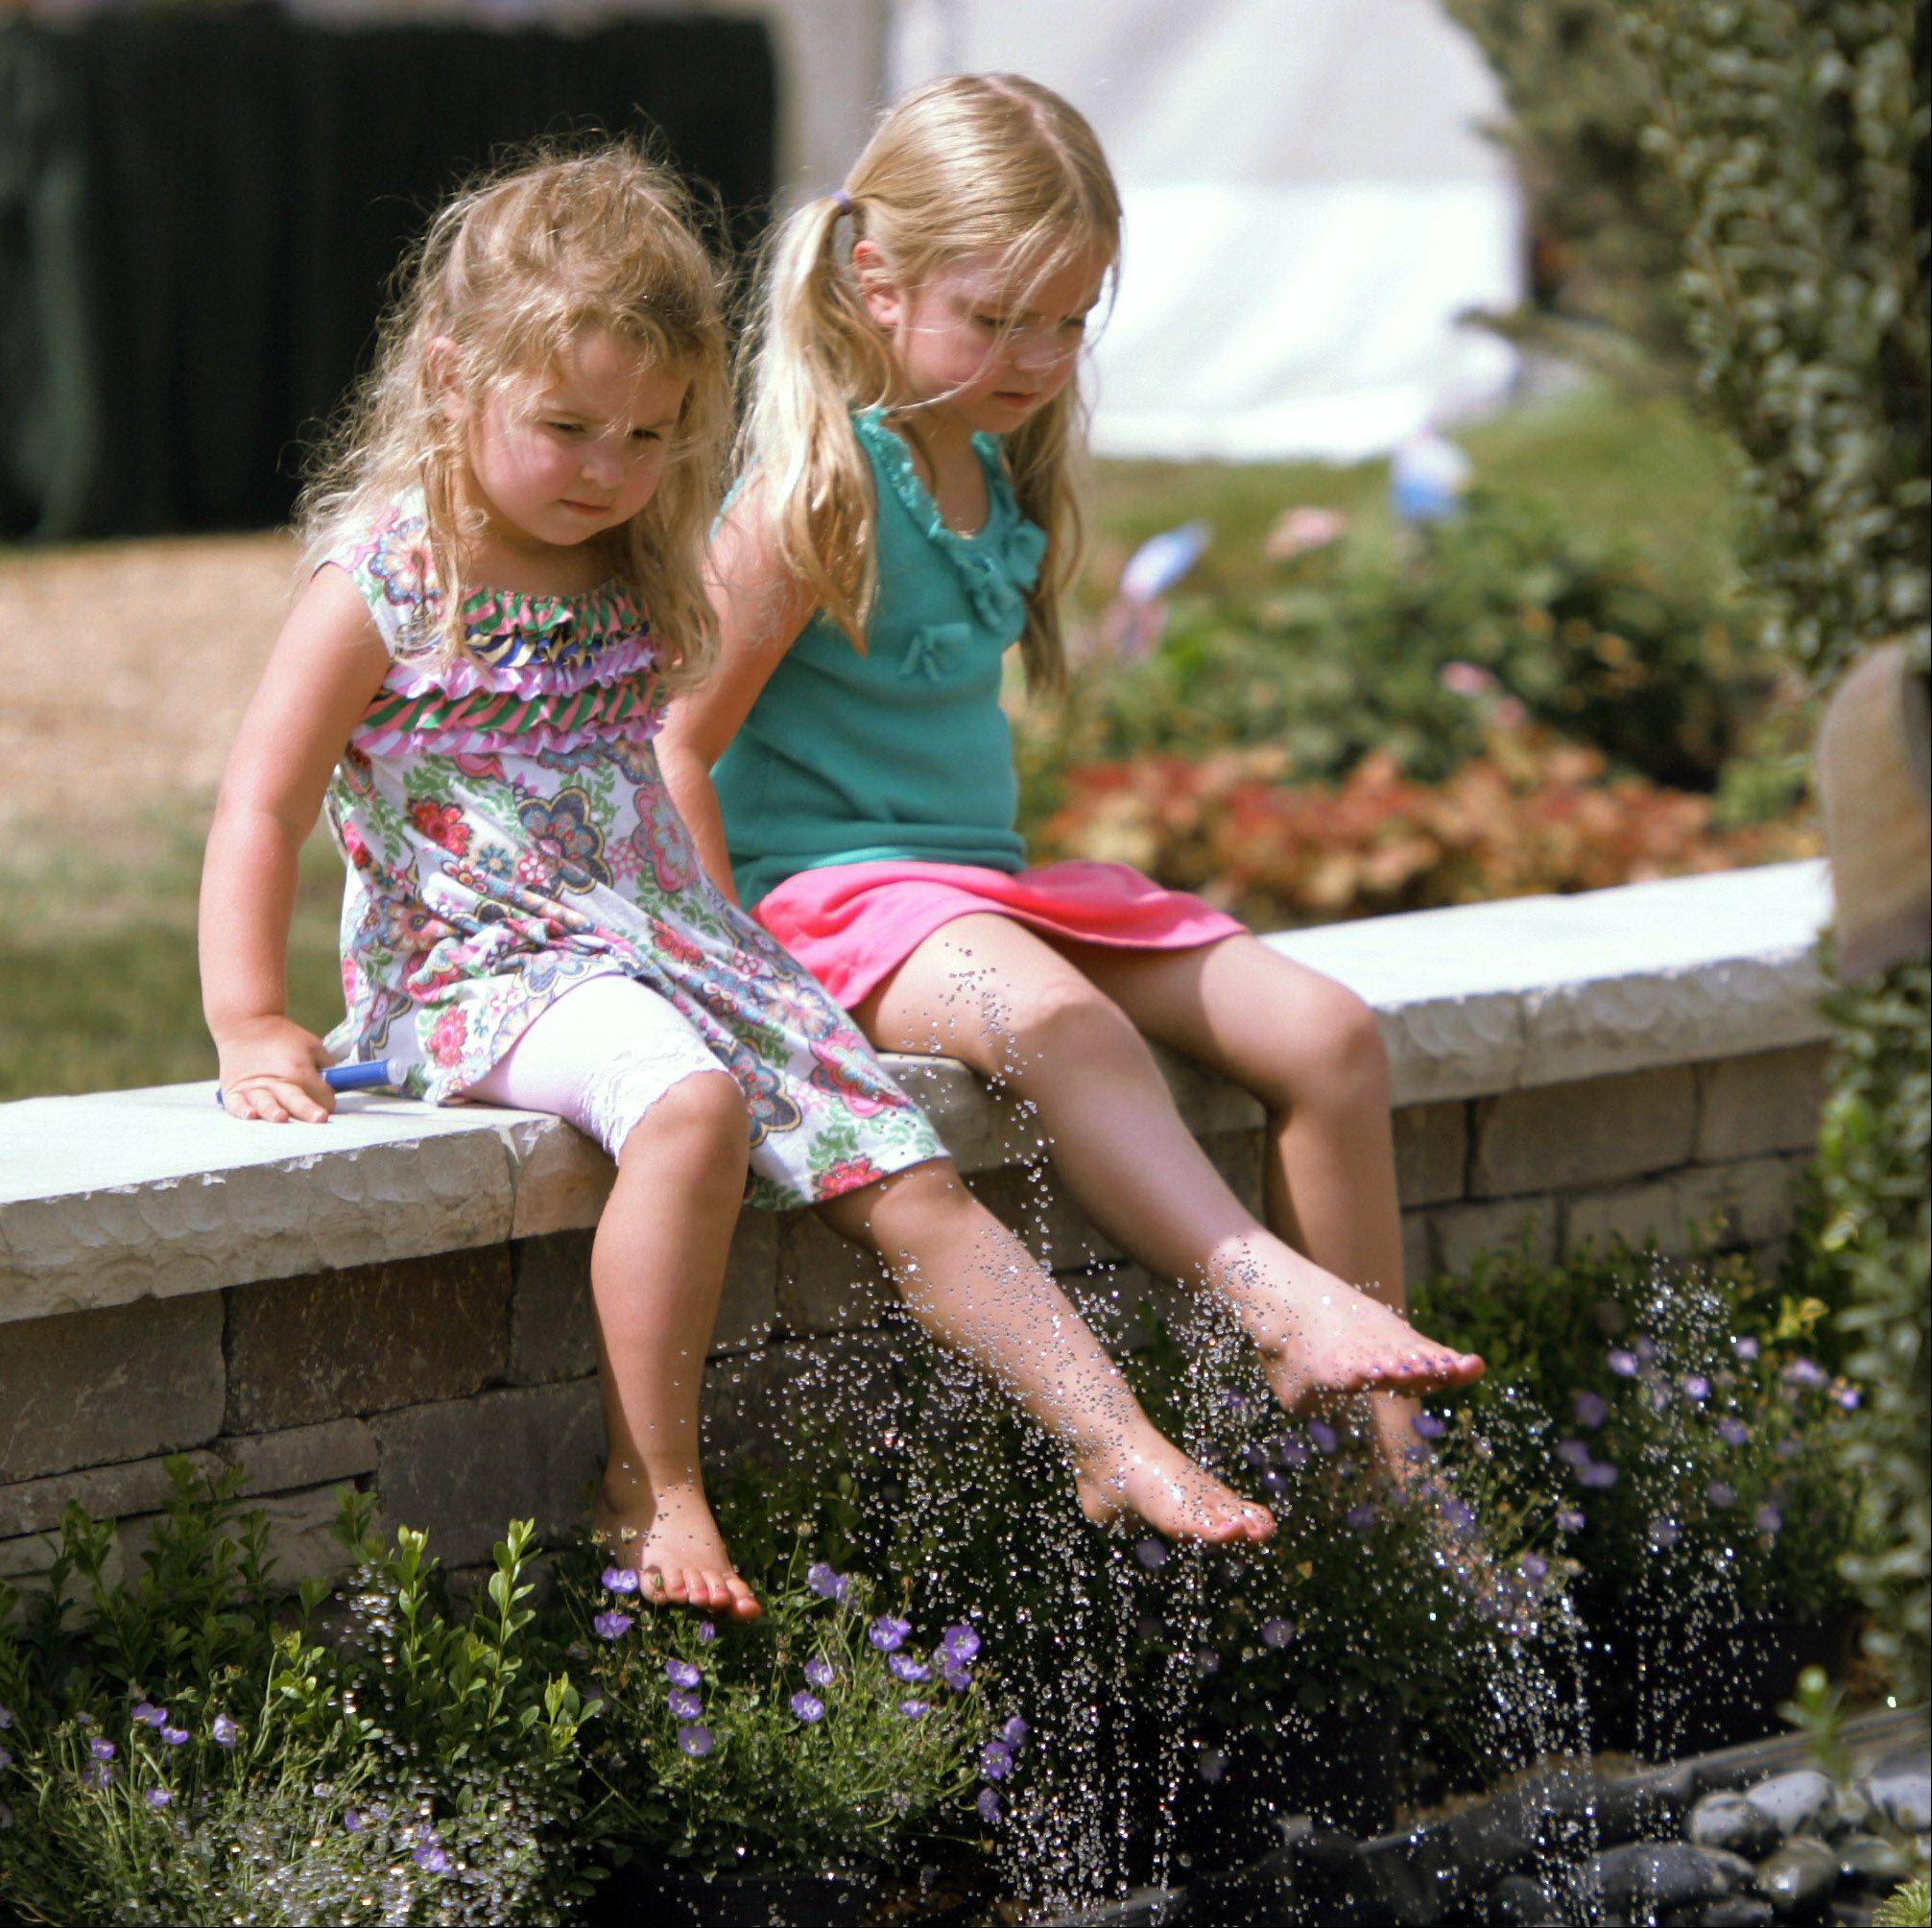 Sisters Audrey, 2, left, and Grace Routh, 5, of Hoffman Estates, play in the sprinklers at the Growing Grace Landscape Association exhibit at the Chicago Flower & Garden Show during the last day of the 84th Annual Lake County Fair Sunday in Grayslake.